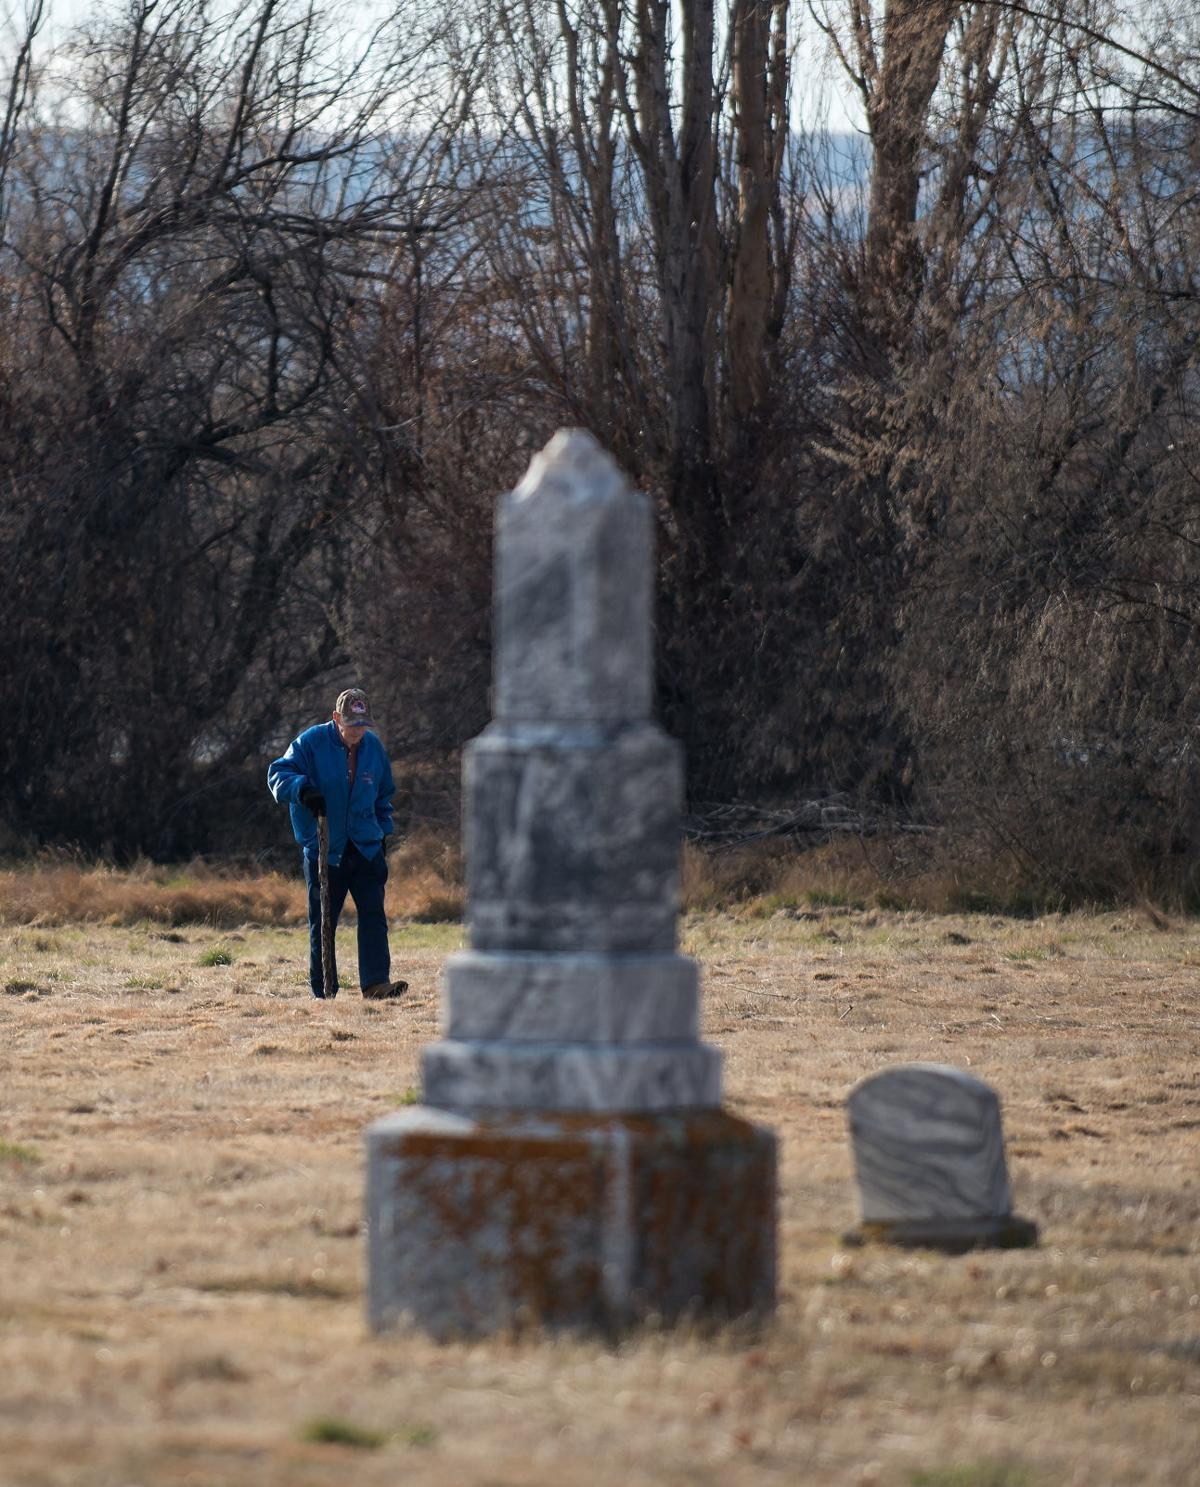 Pioneer Cemetery receives care